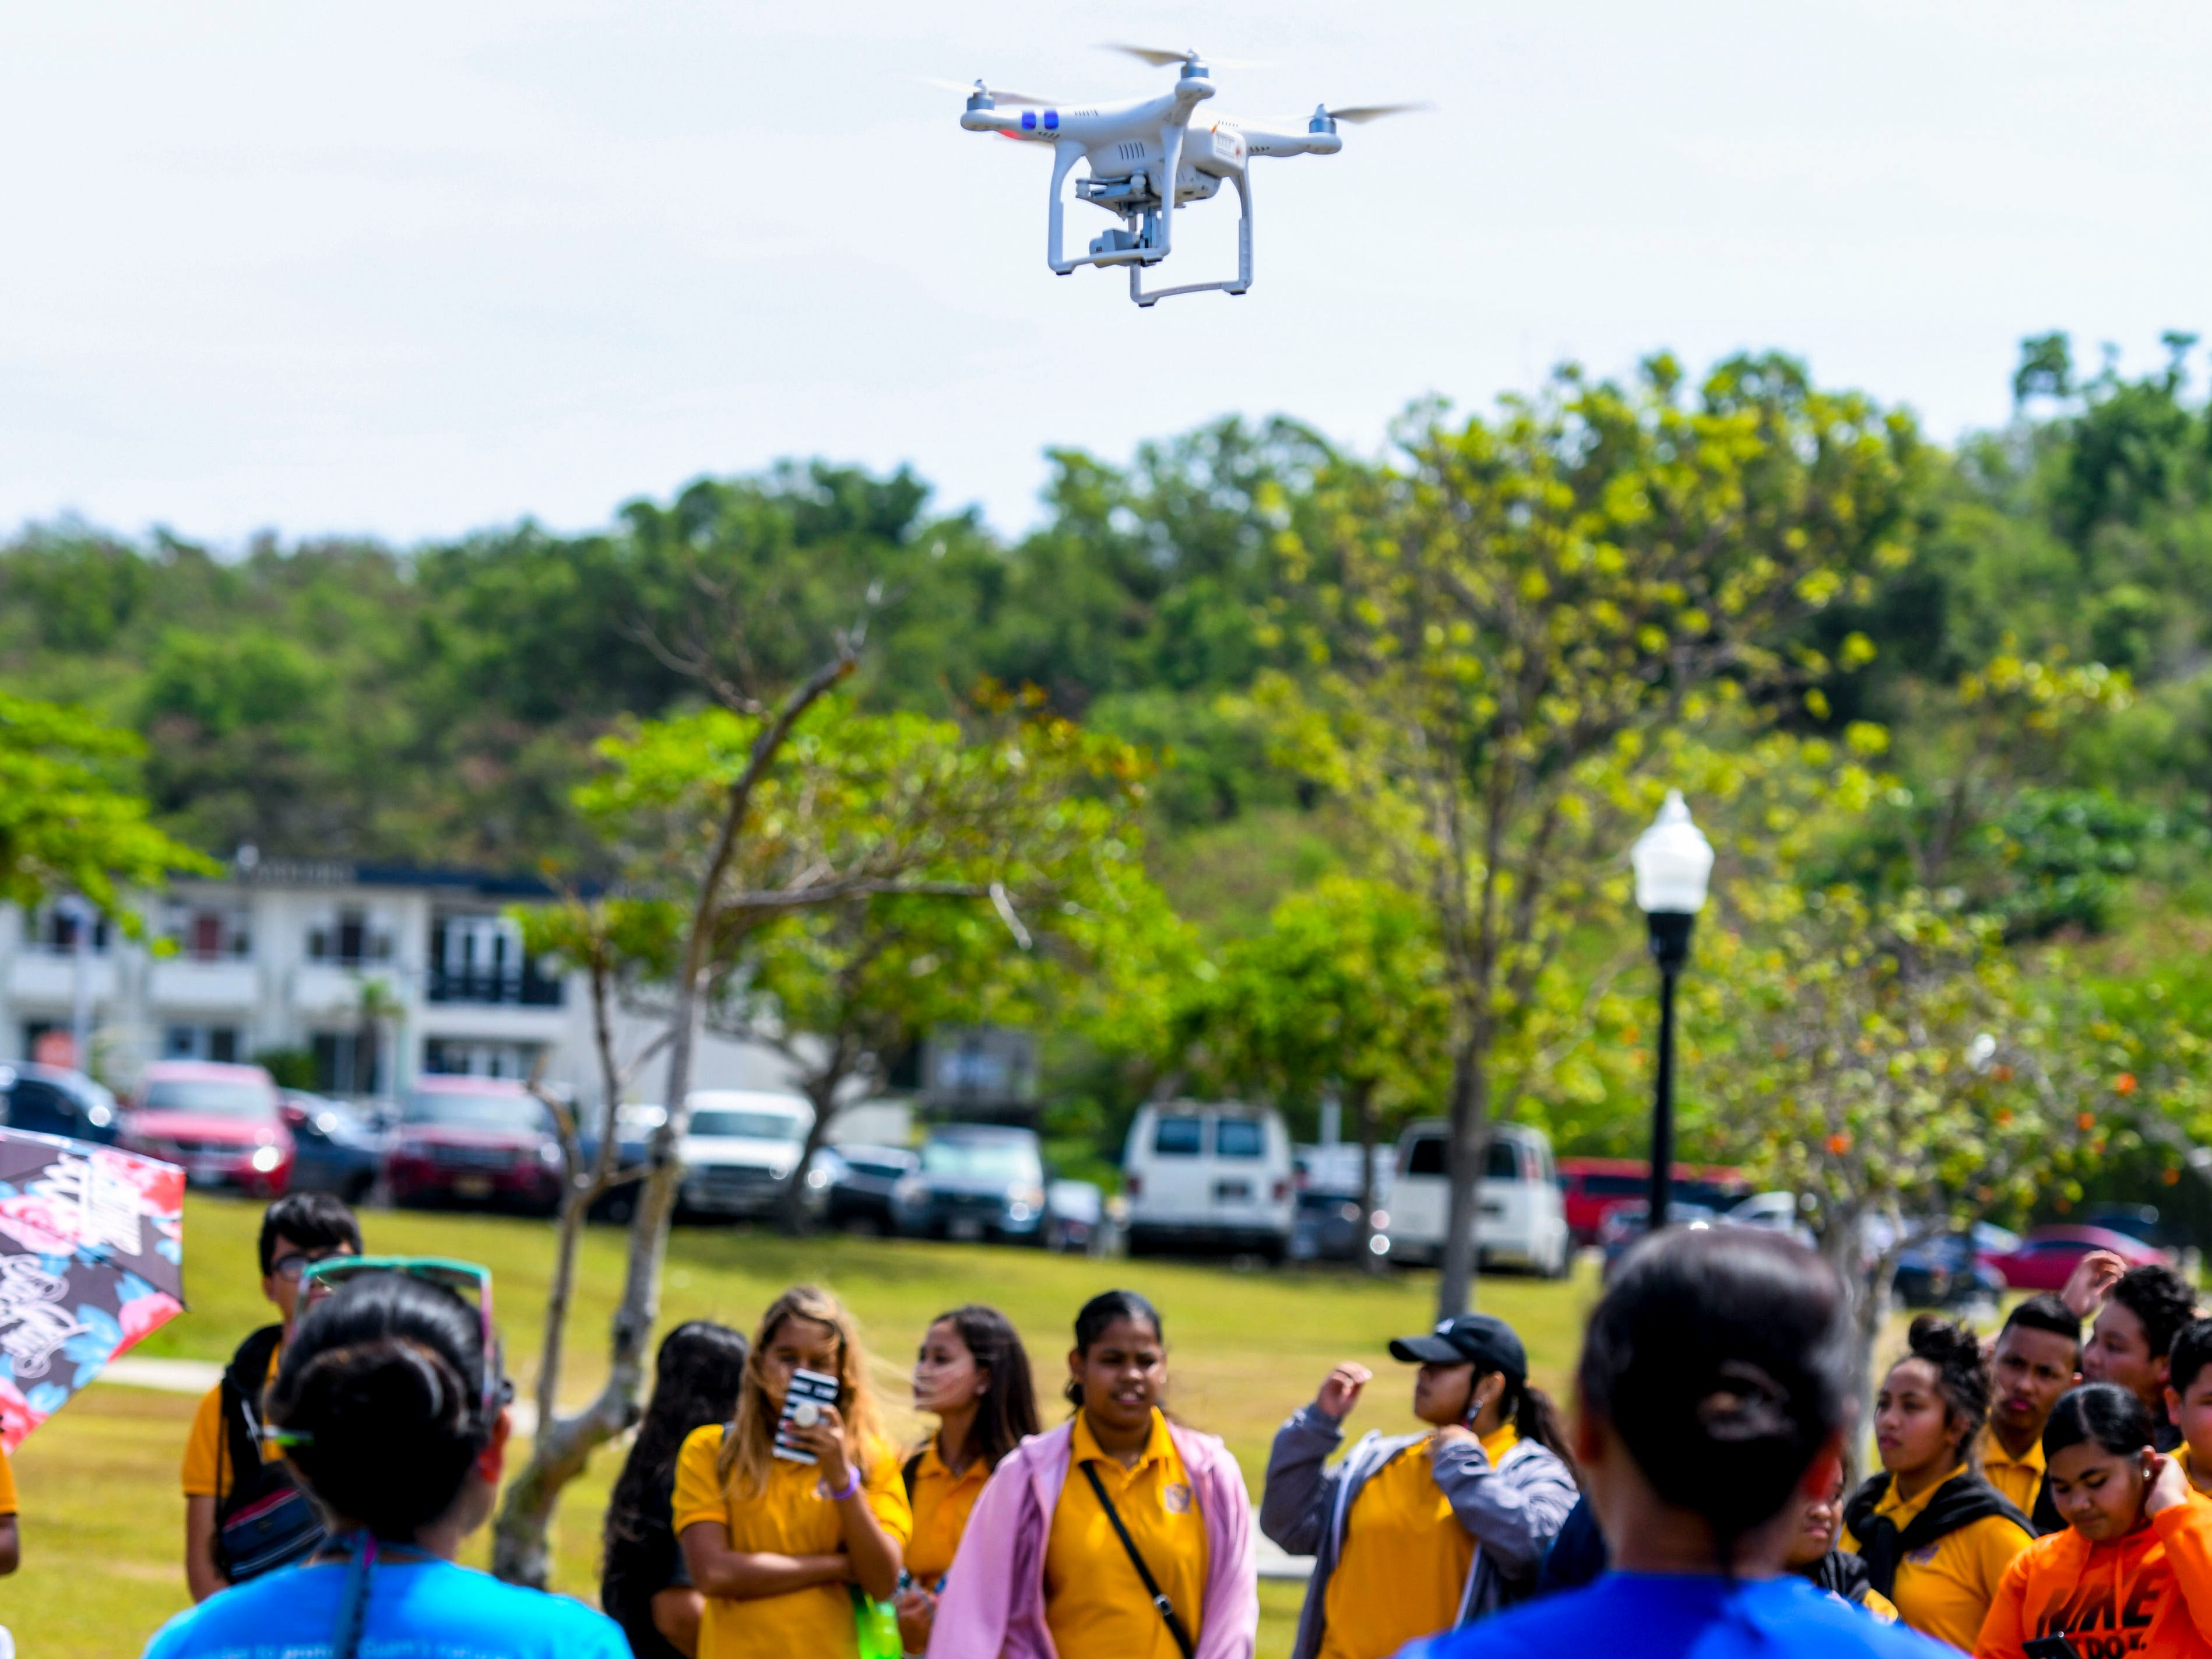 Unmanned Aerial Vehicle Organization President Cassandra Flores offers a flying demonstration during the University of Guam 51st Charter Day celebration in Mangilao on Tuesday, March 12, 2019.